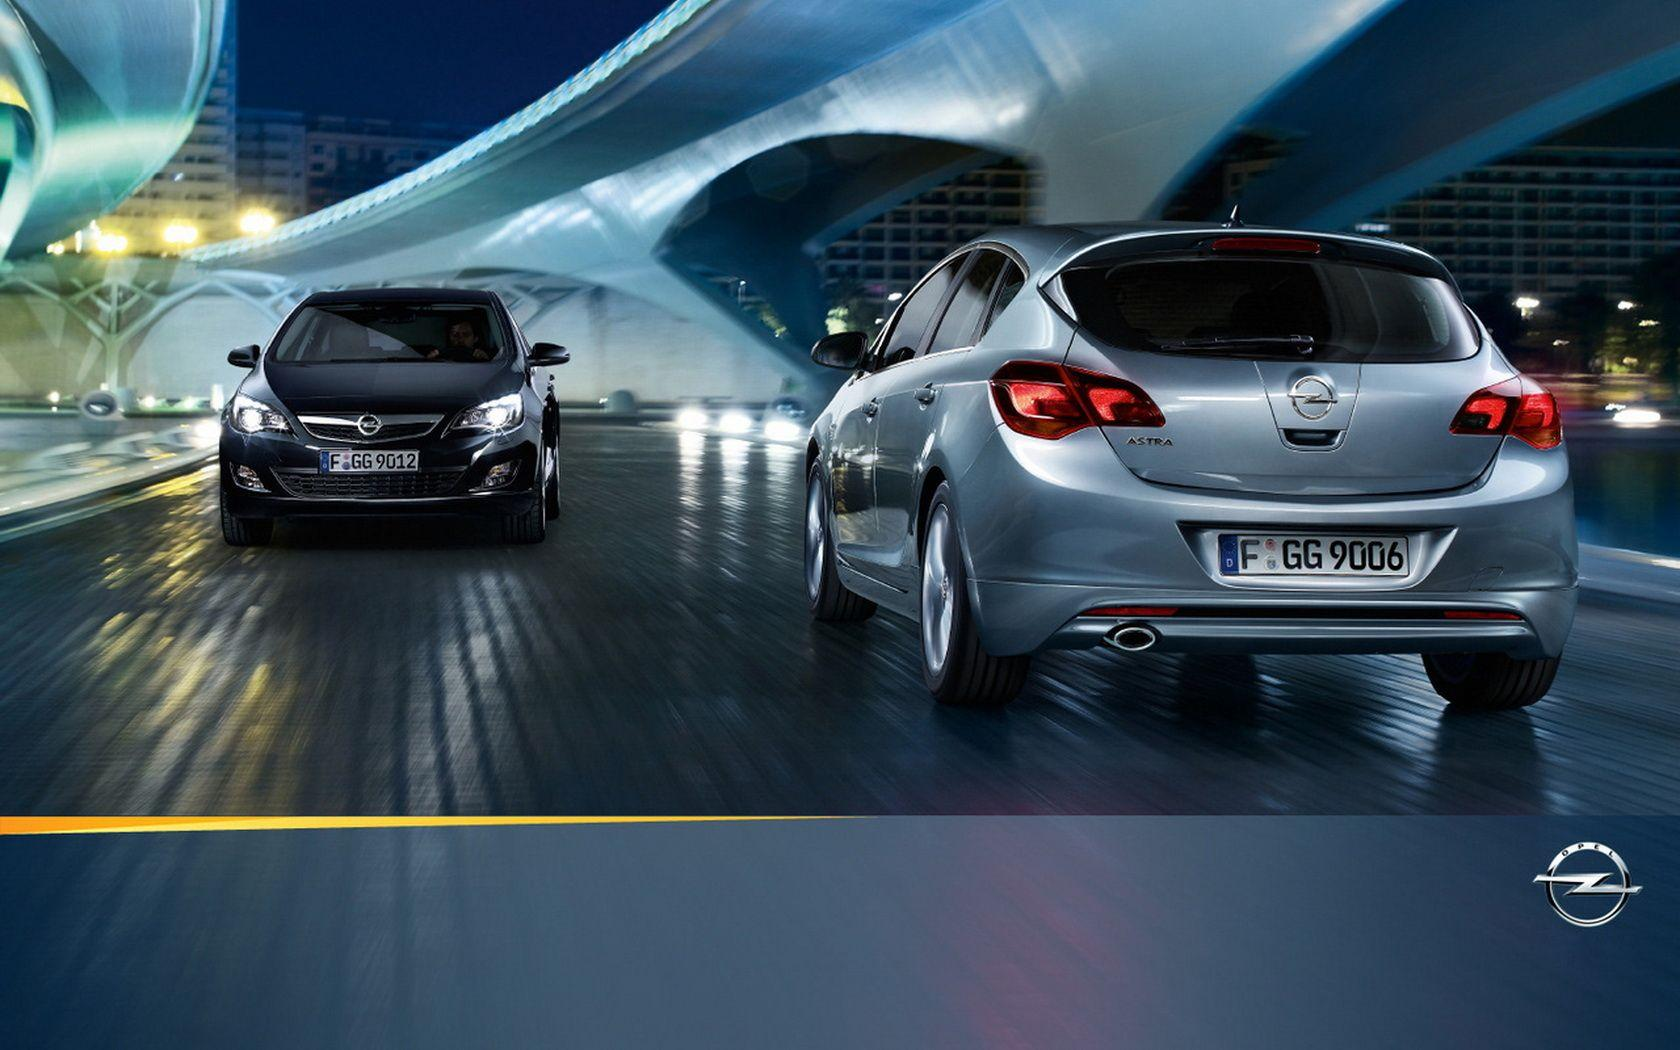 Opel Astra wallpapers and image